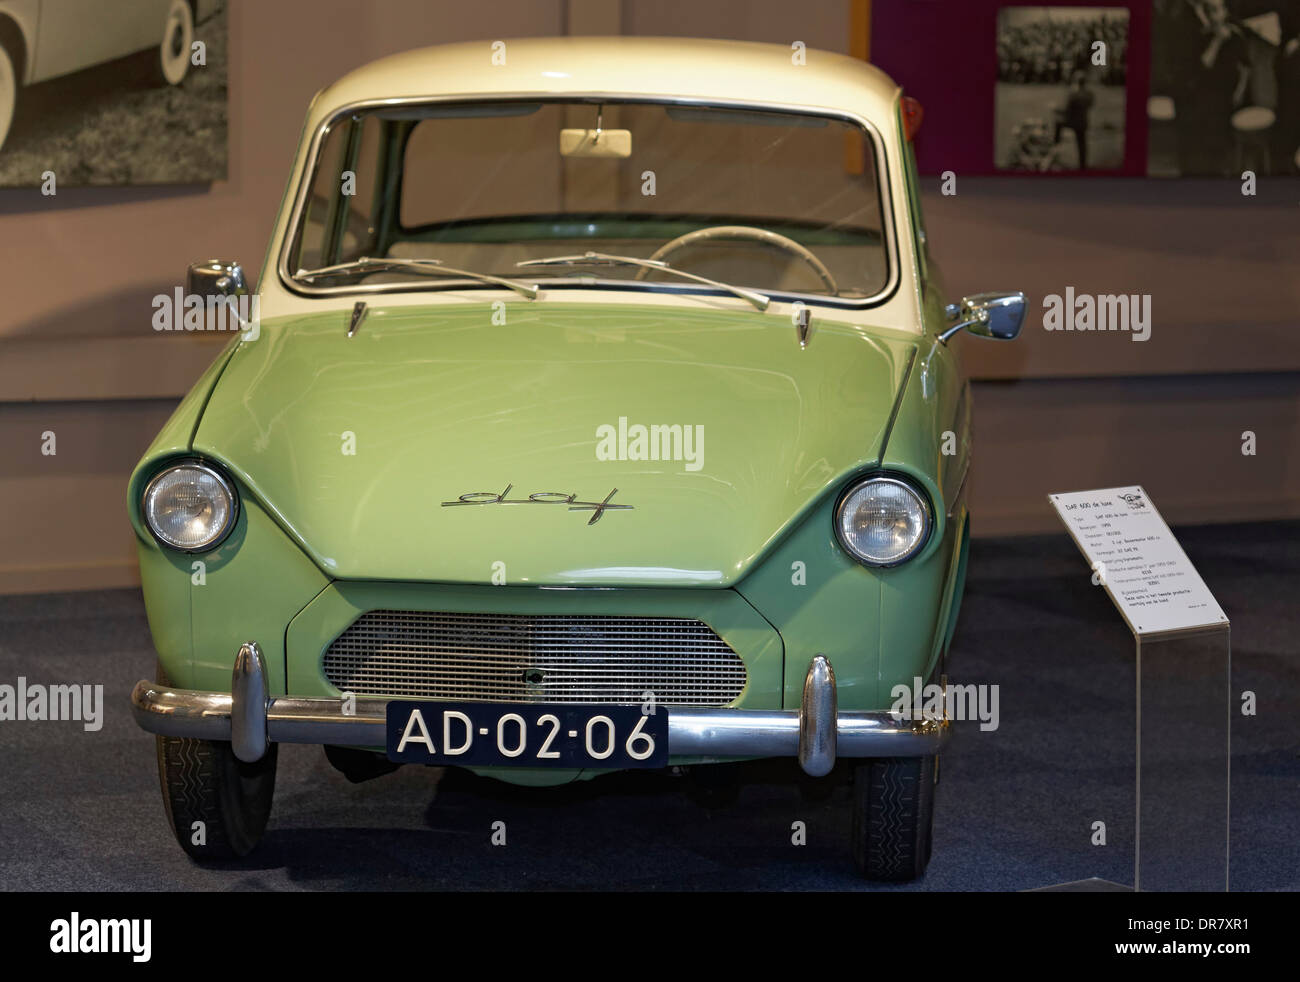 DAF 600 de luxe, Dutch small car from 1959, DAF Museum, Eindhoven, North Brabant, Netherlands - Stock Image